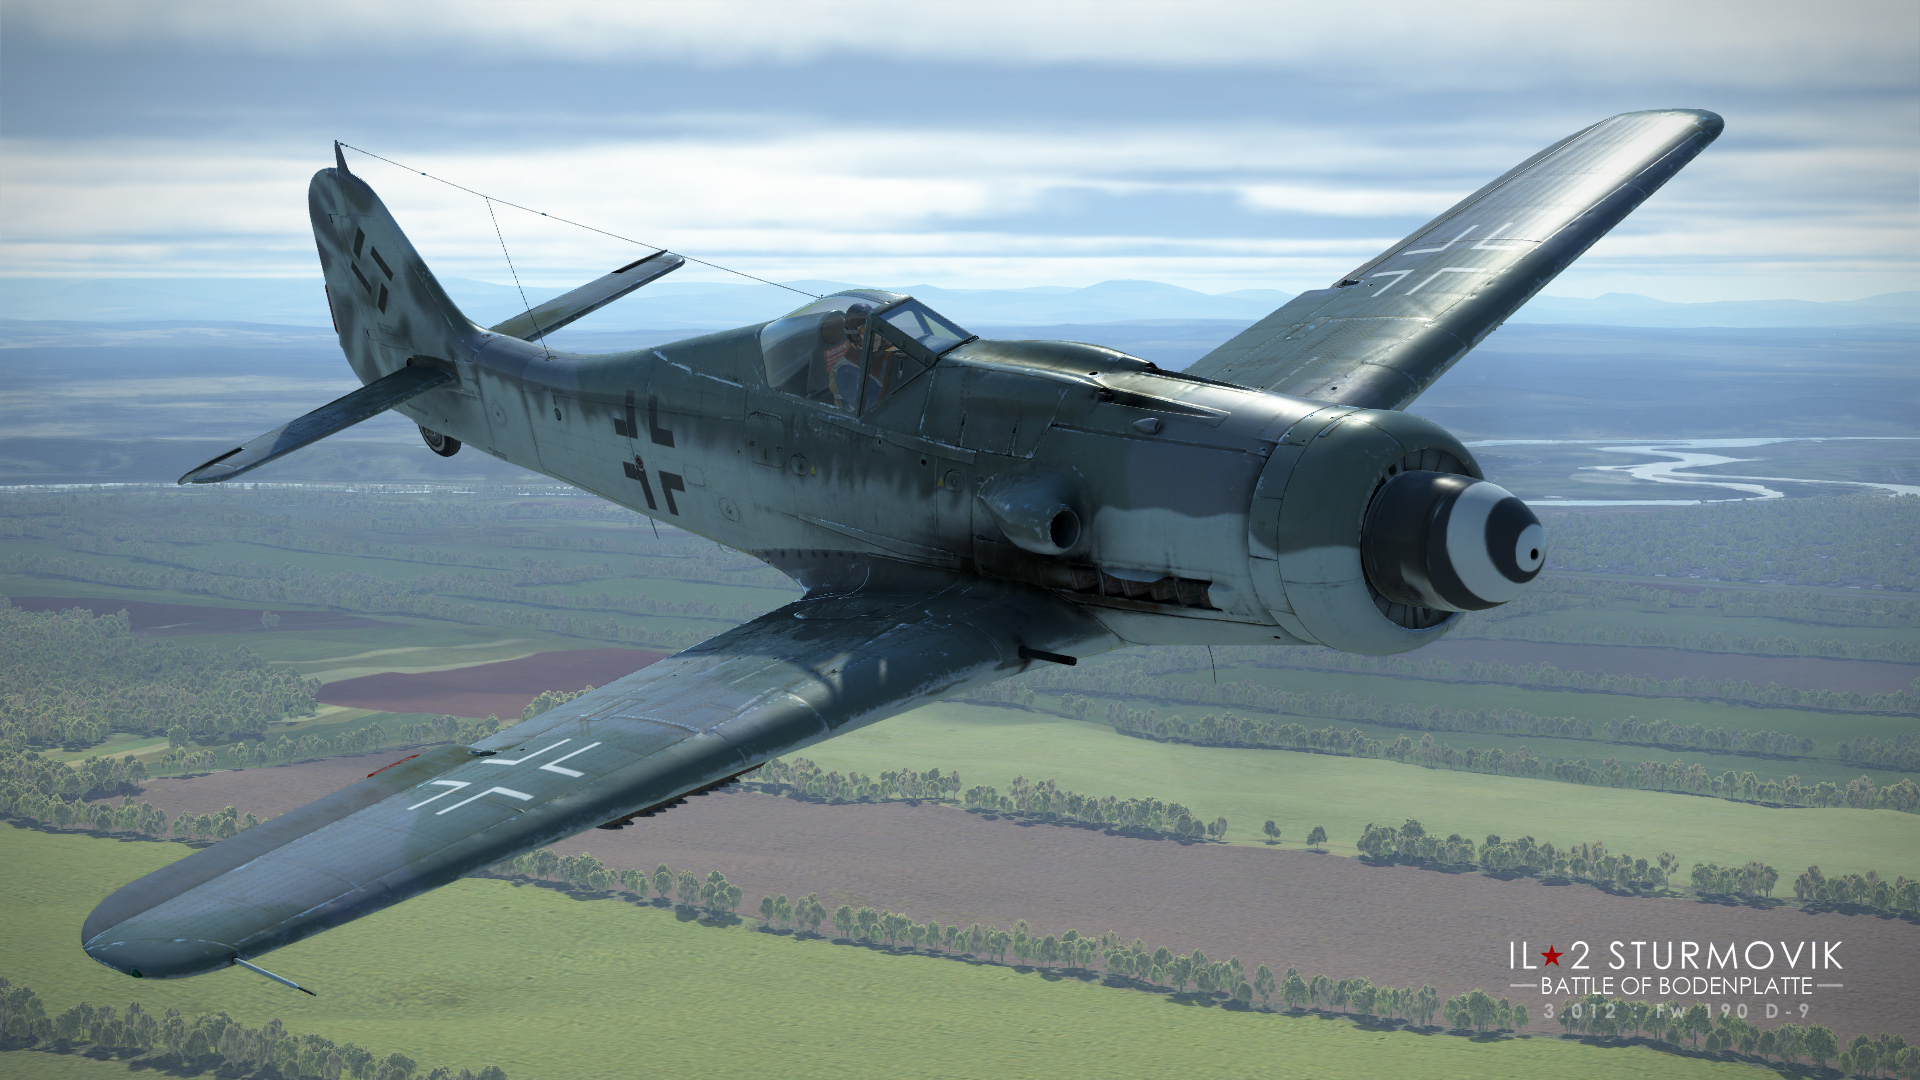 Spring into Action with Discounts on Collector Planes and